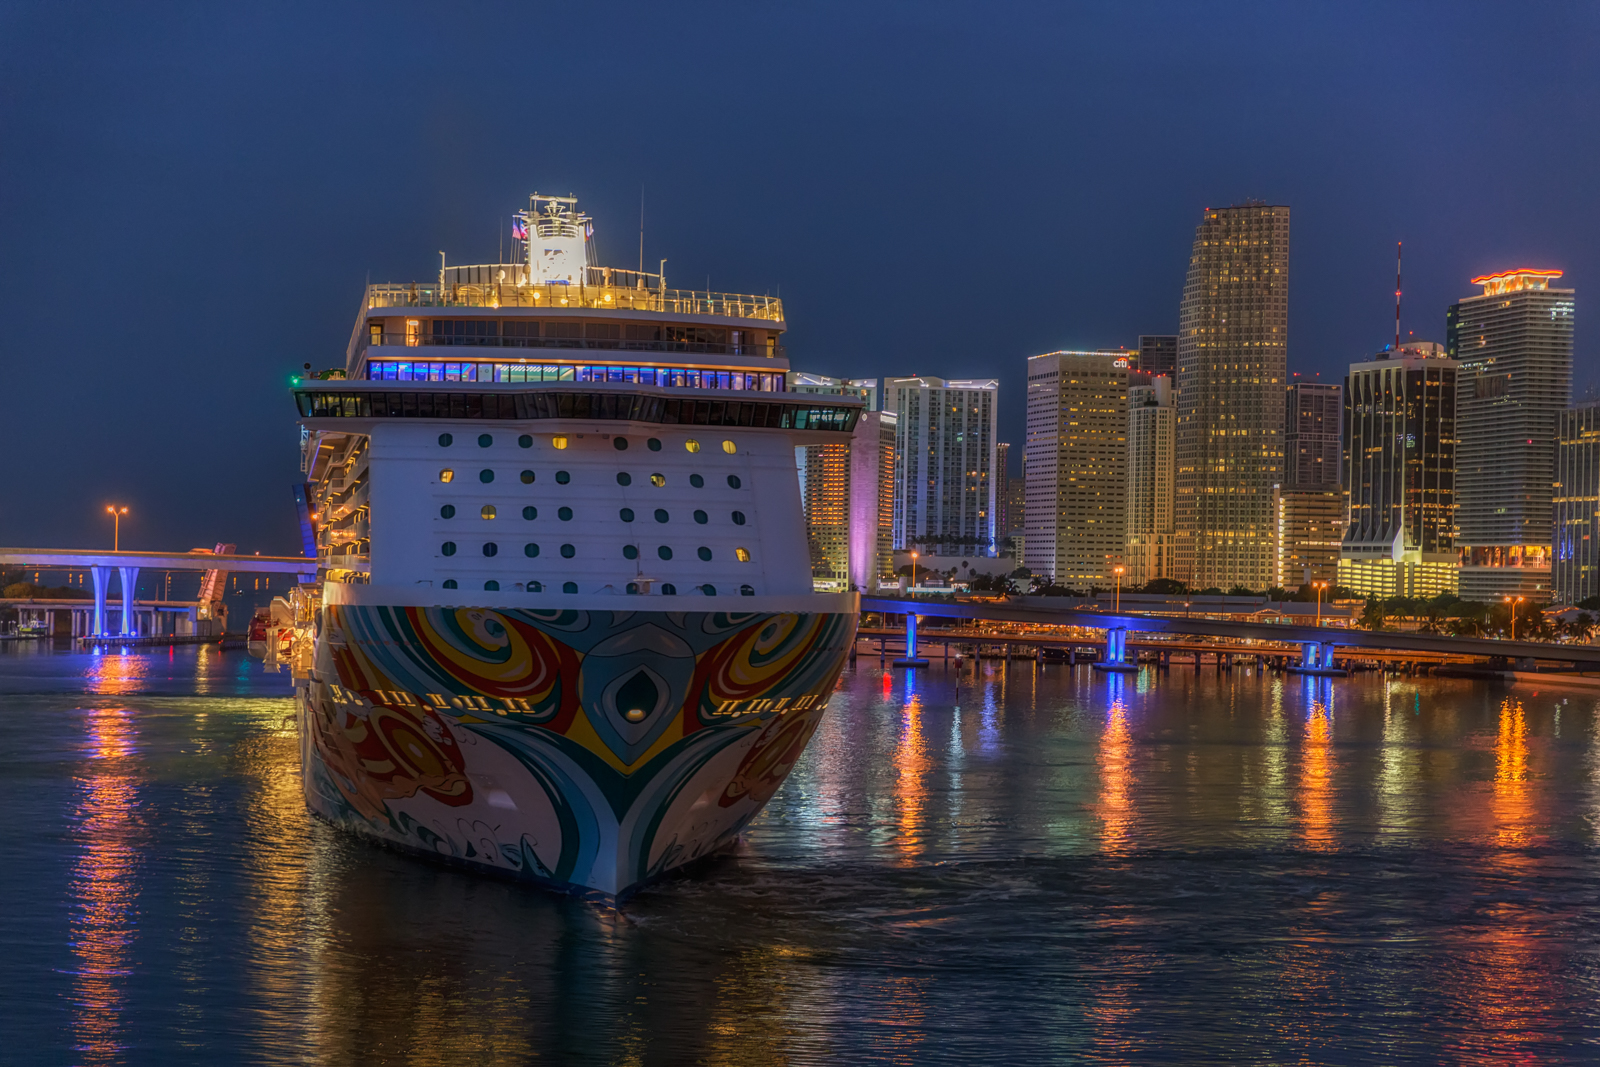 Norwegian getaway and miami matthew paulson photography for Weekend getaways from miami